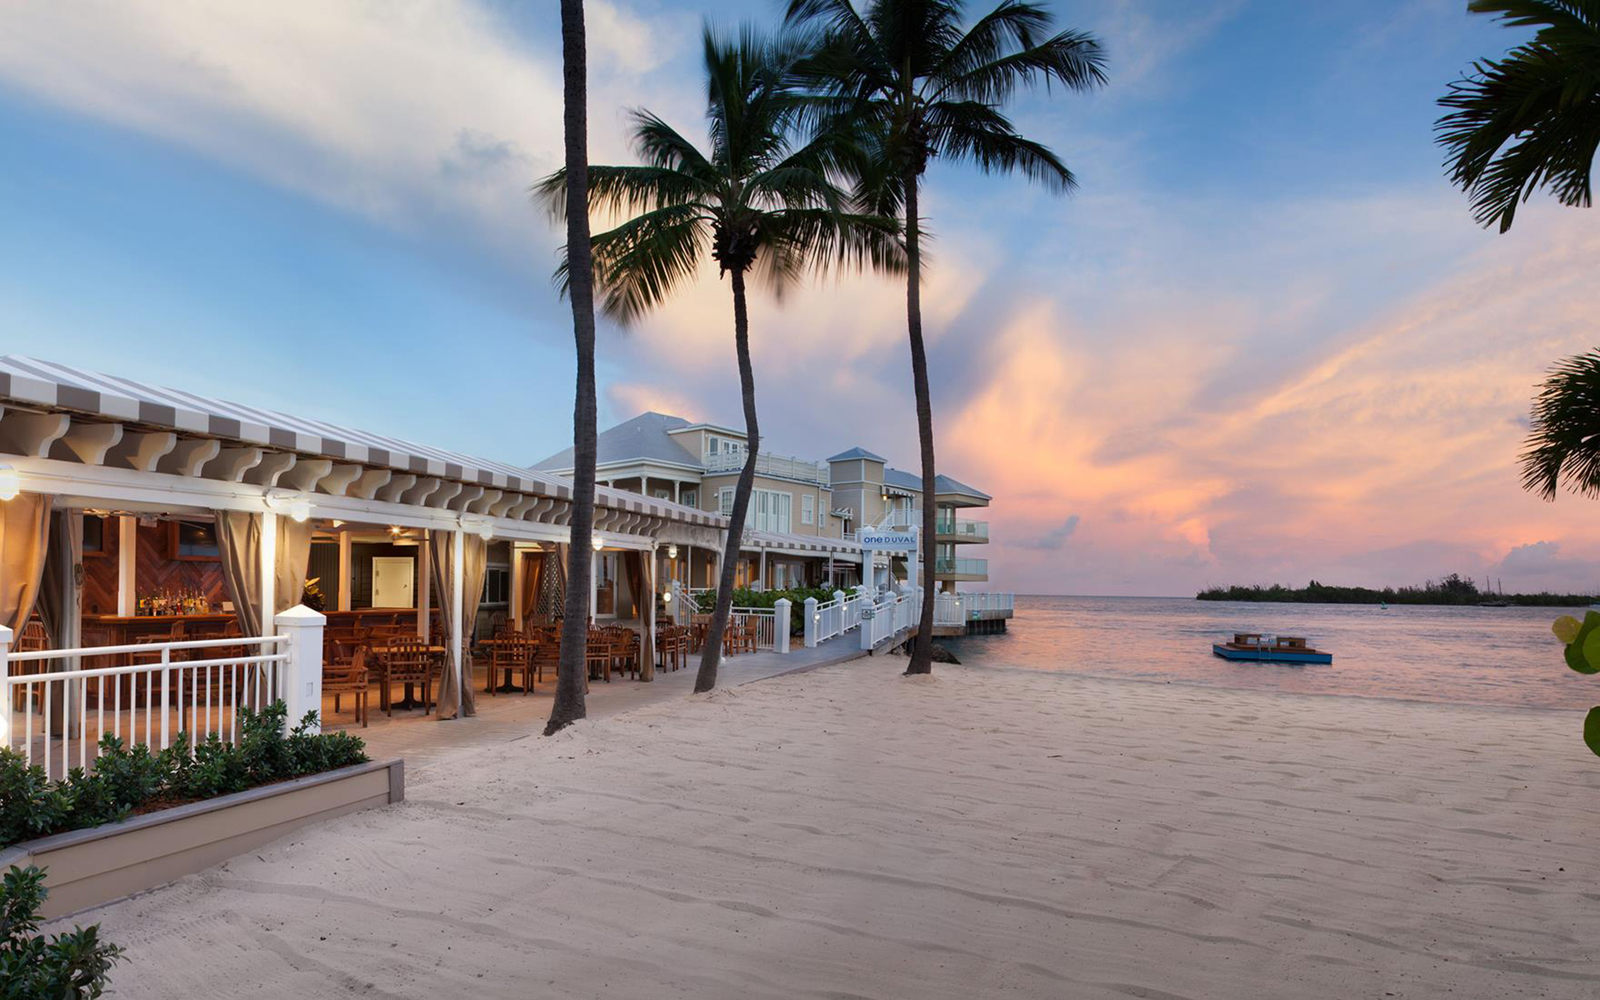 No. 11: The Pier House Resort & Spa, Key West